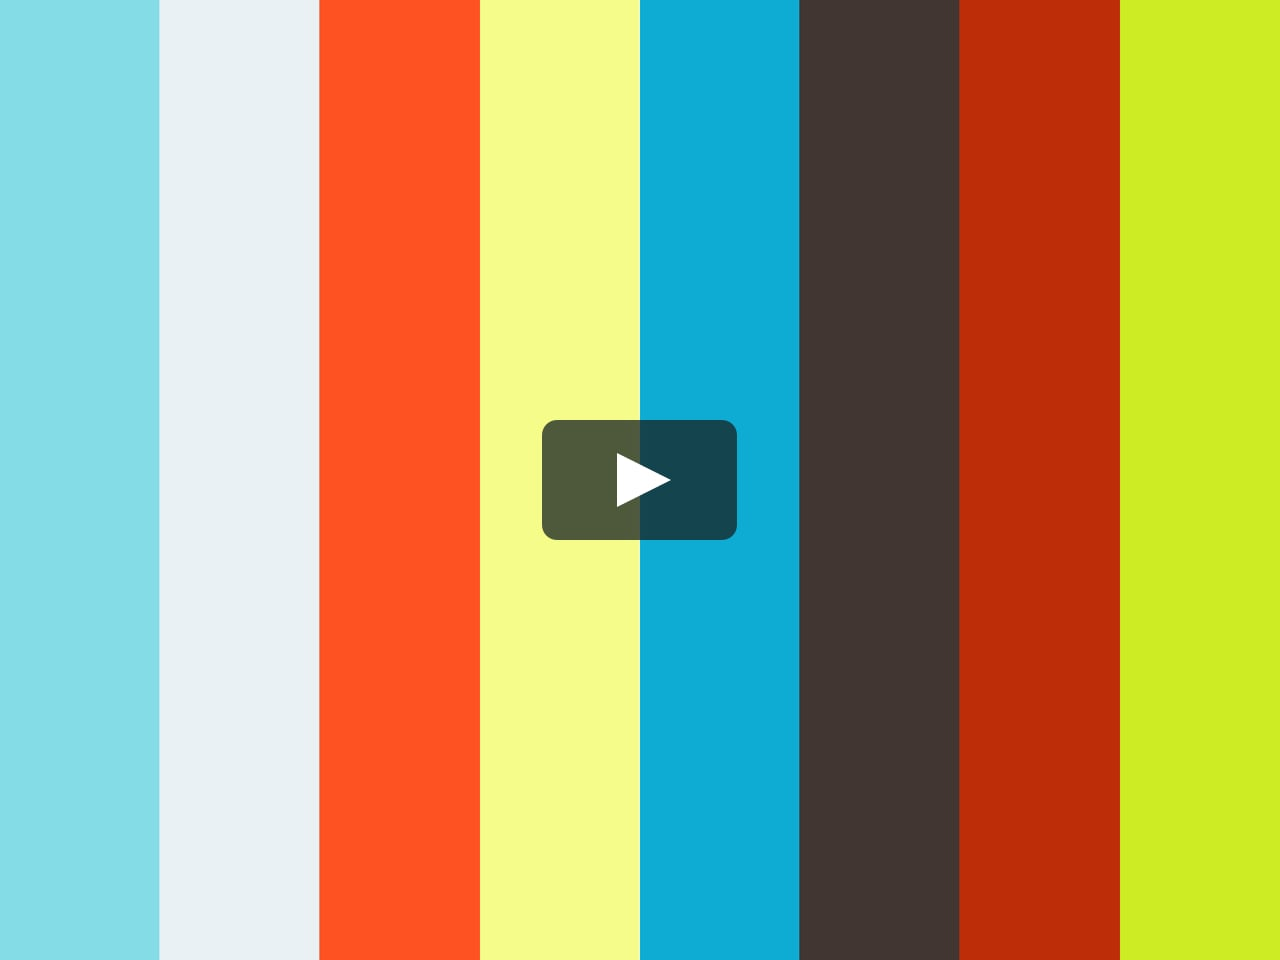 Bauco Plus Ii Access Panel Installation Video On Vimeo